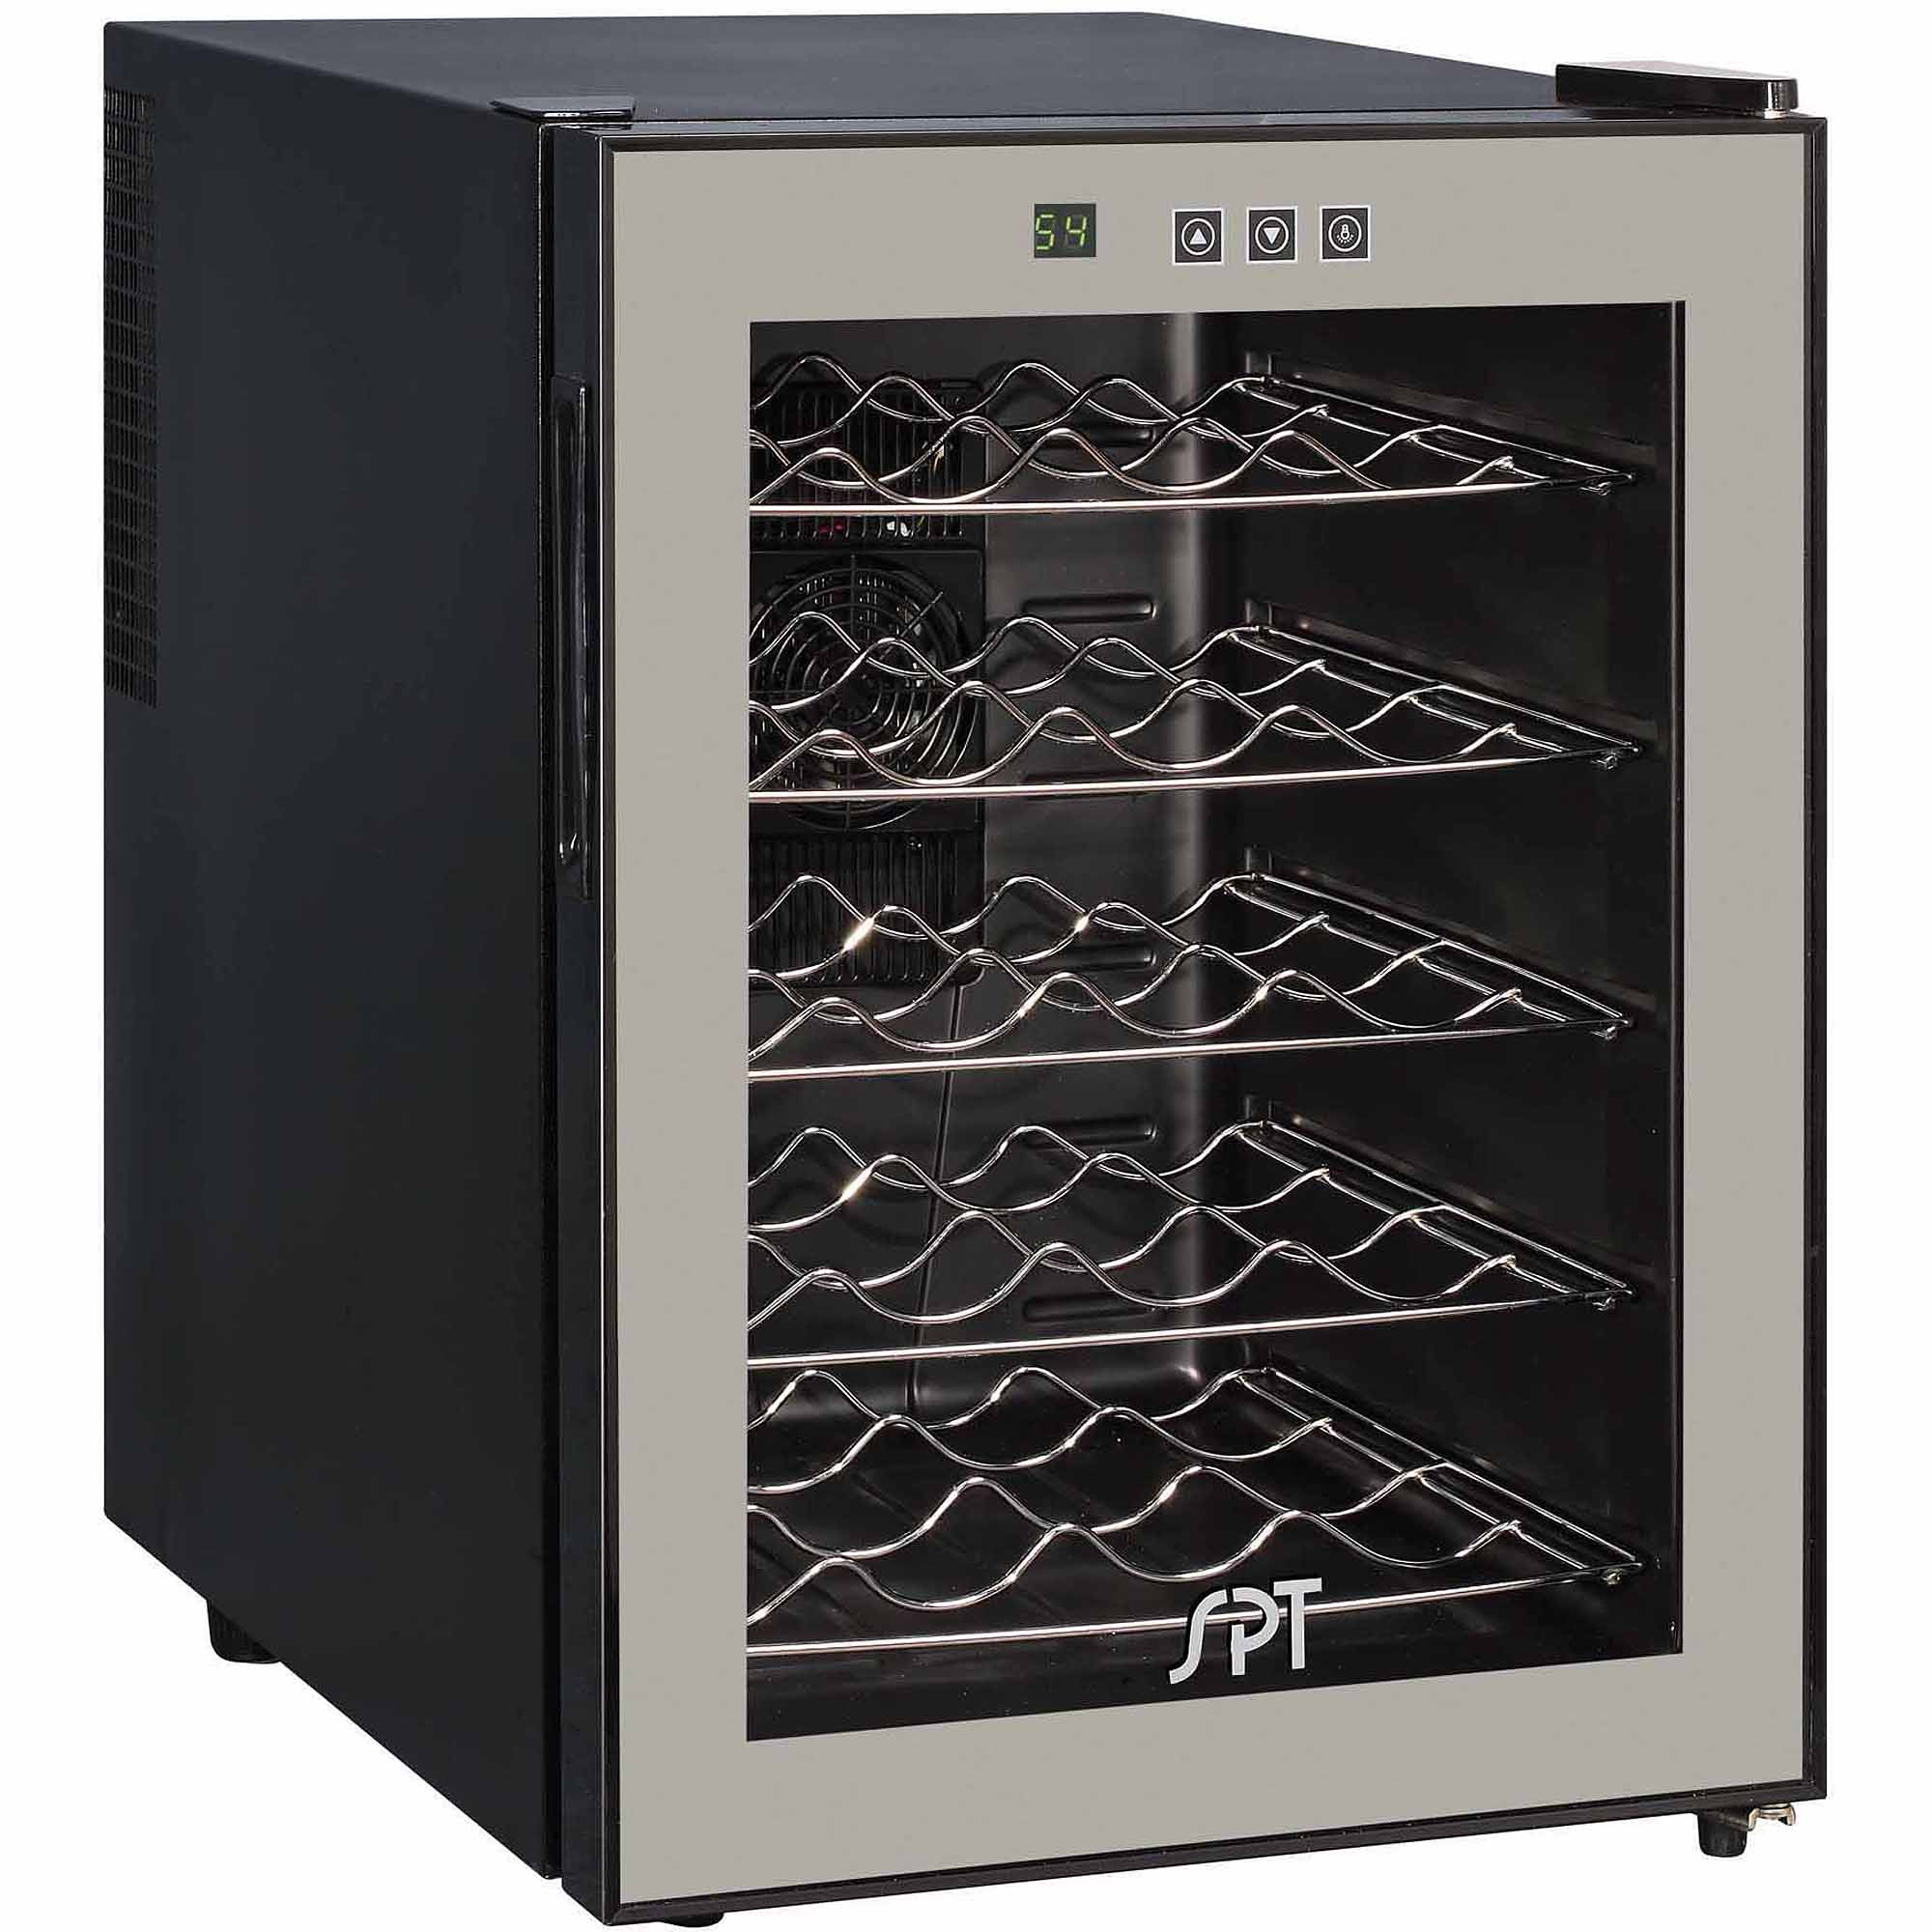 Sunpentown 20-Bottle Thermo-Electric Wine Cooler with Touch-Sensitive Control, Black